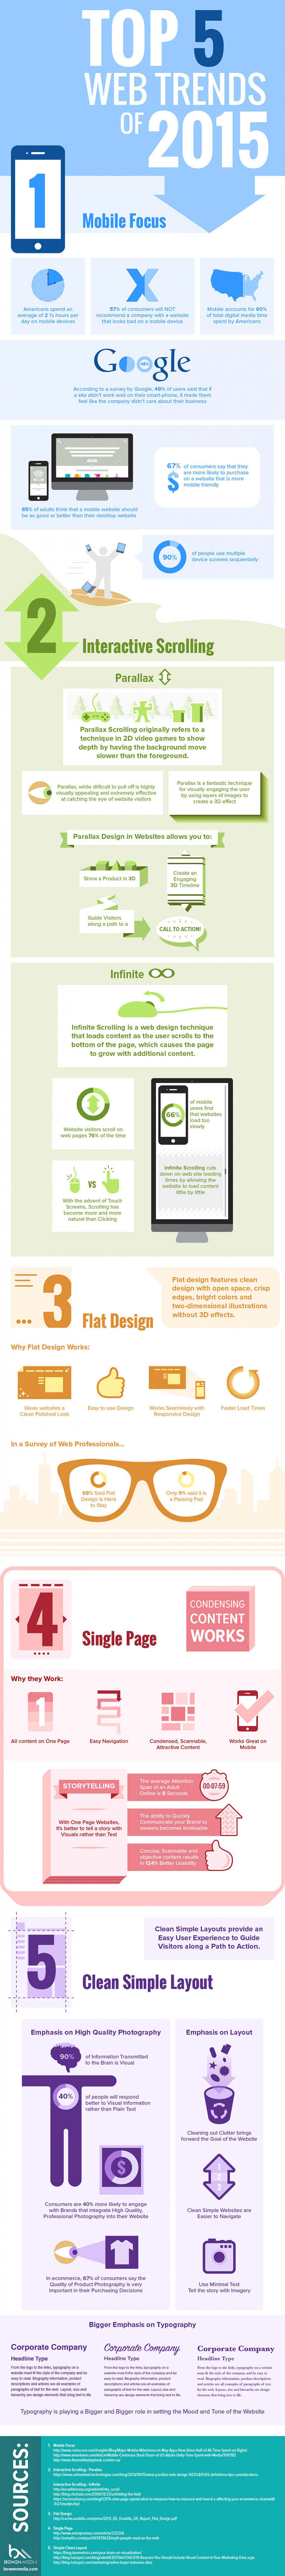 Infographic: Top 5 web trends of 2015